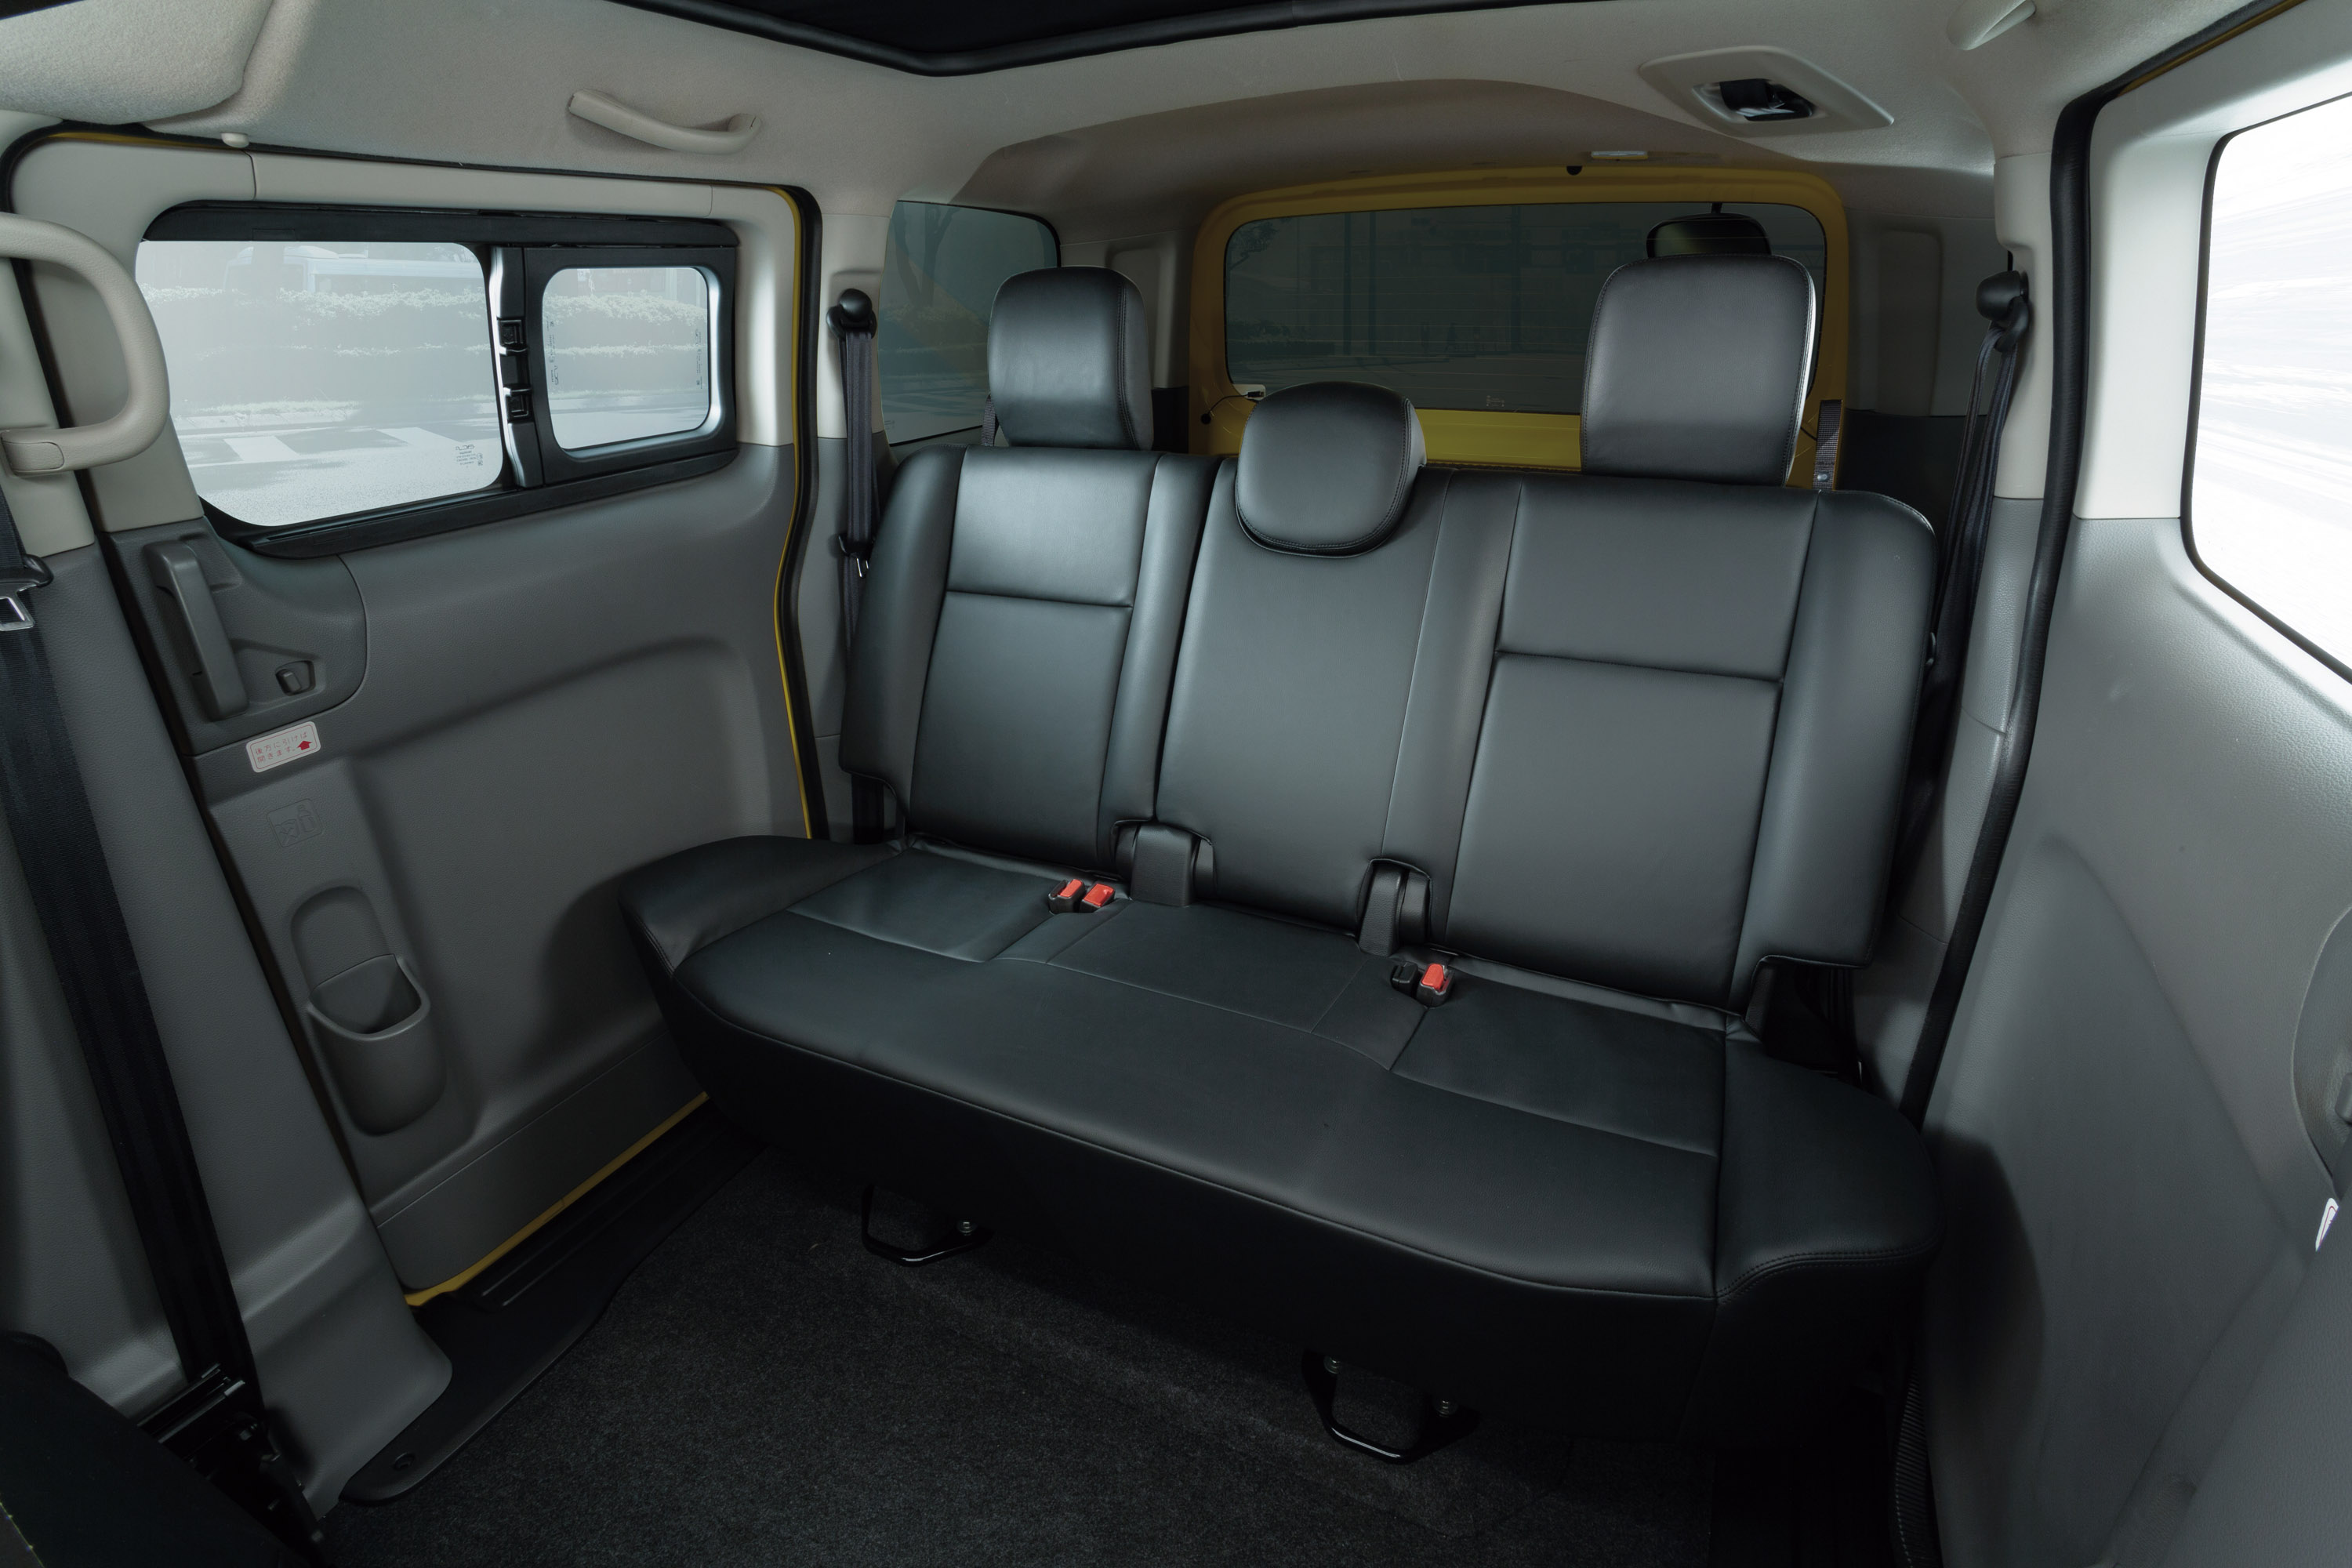 nissan introduces its new generation nv200 taxi in japan. Black Bedroom Furniture Sets. Home Design Ideas